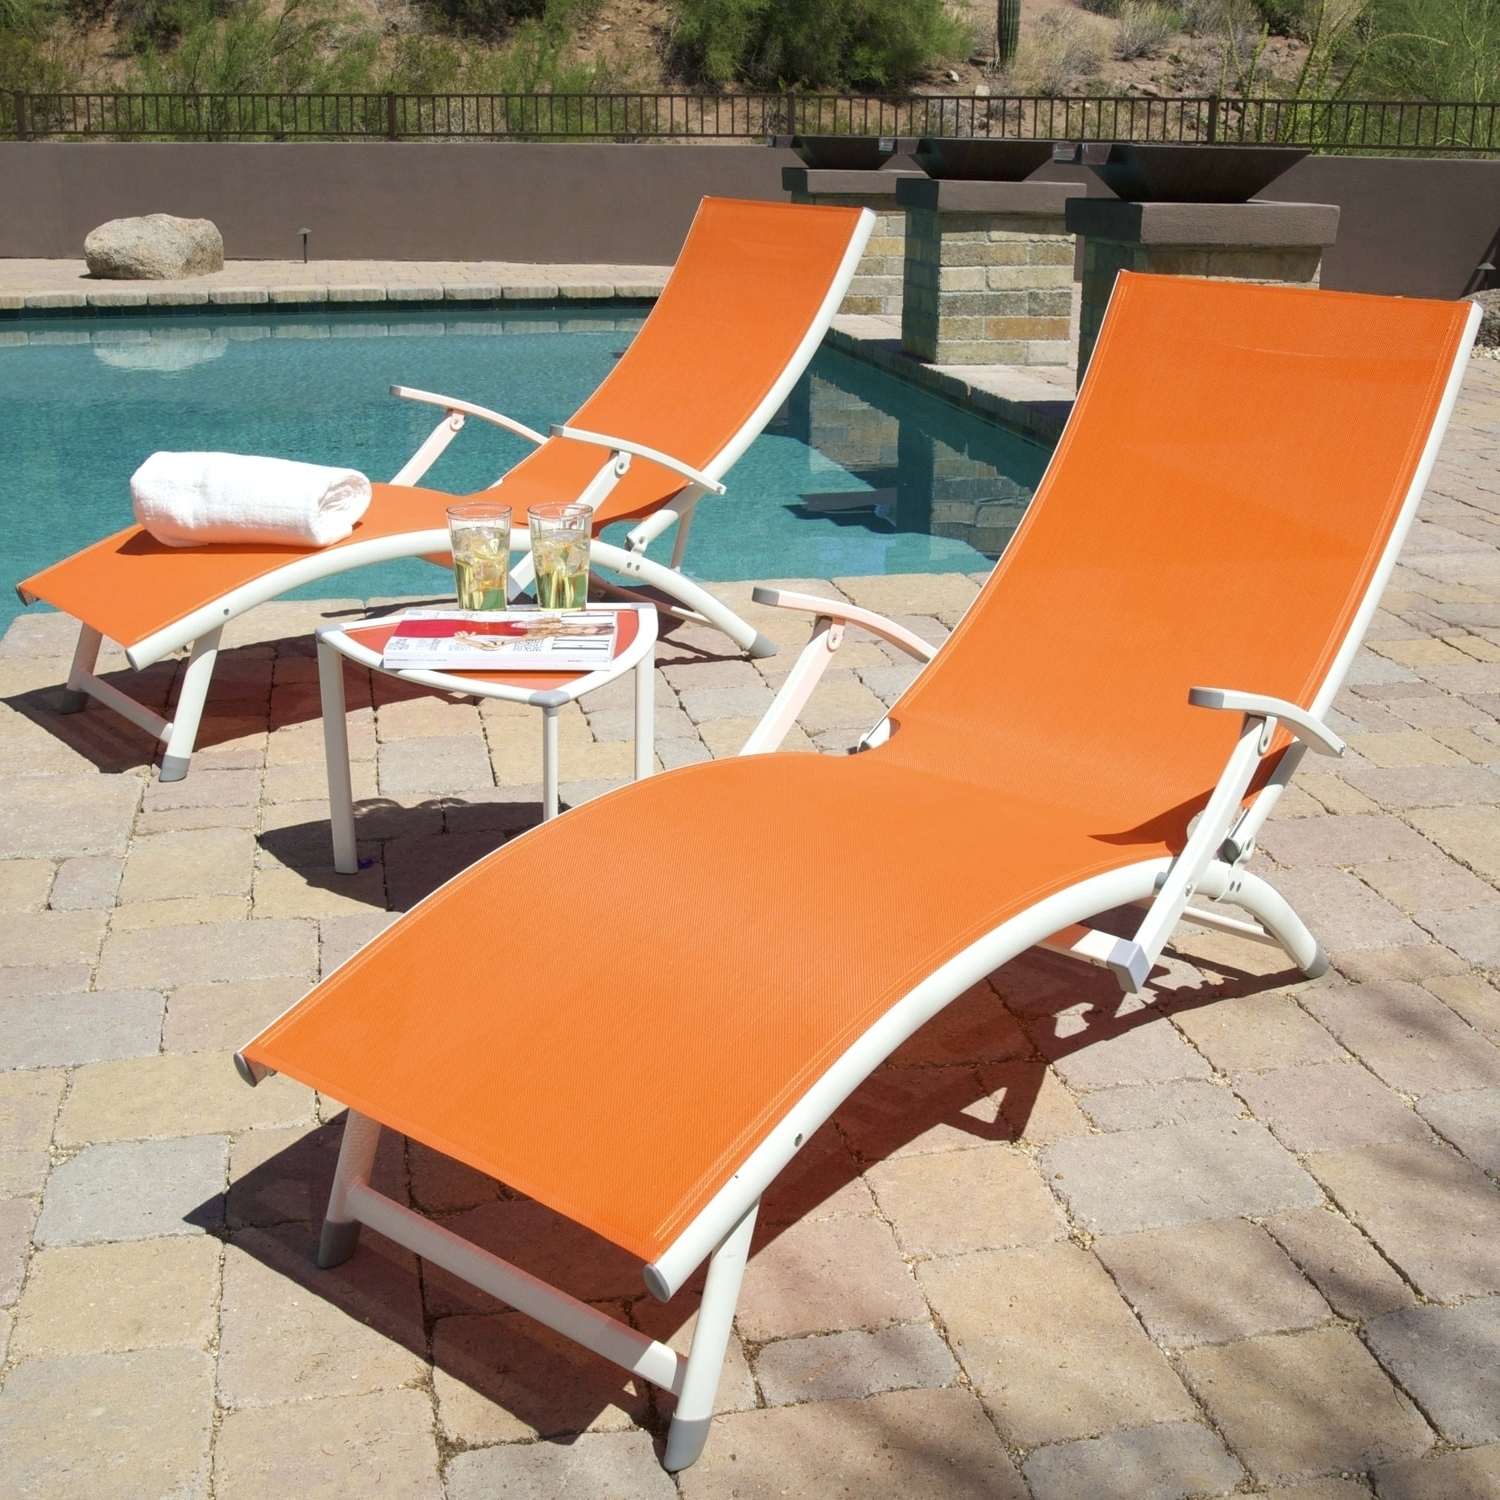 Pvc Outdoor Lounge Chairs • Lounge Chairs Ideas With Current Modern Outdoor Chaise Lounge Chairs (View 14 of 15)